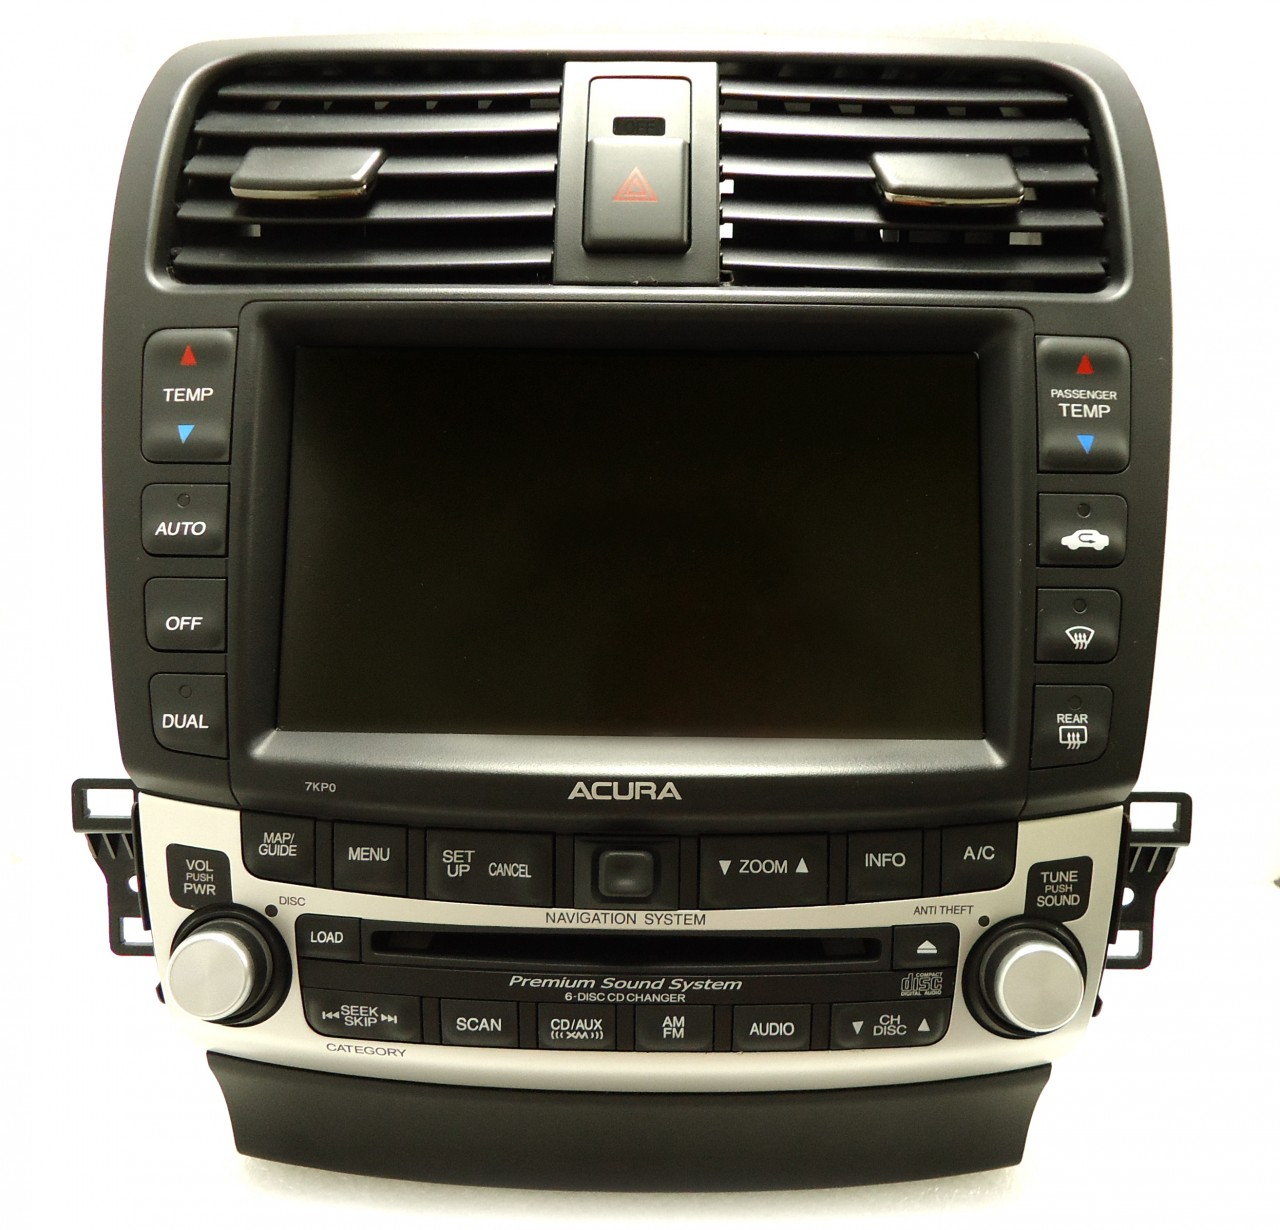 Acura TSX Navigation GPS Radio 6 Disc Changer CD Player 7KP0 Display